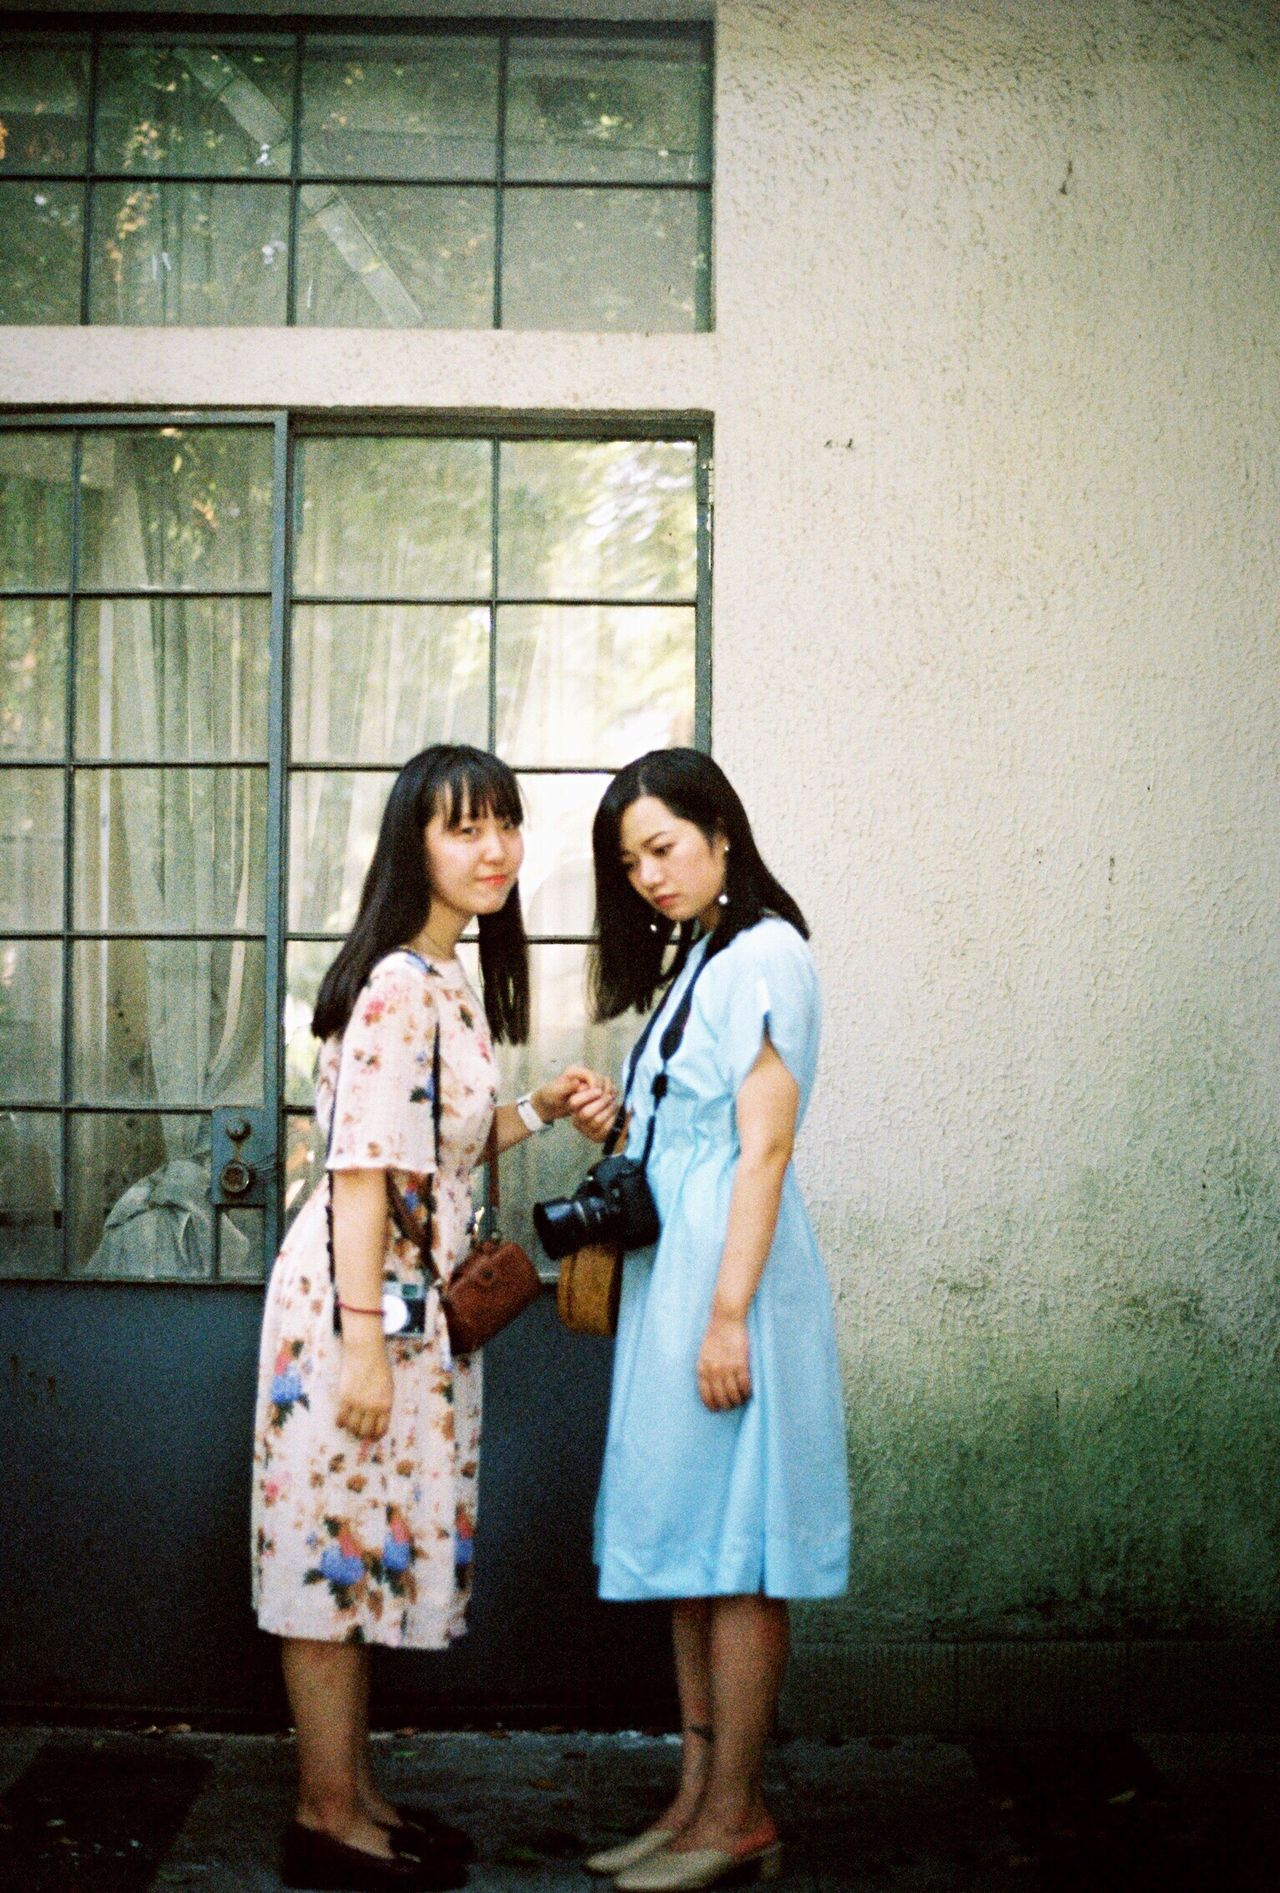 EyeEm Selects Togetherness Full Length Two People Standing Peoplephotography EyeEmNewHere The Week Of Eyeem EyeEm People Of EyeEm People Photography People Watching The Week On EyeEem Pretty Girl Summer Friendship Adult Young Women Only Women People